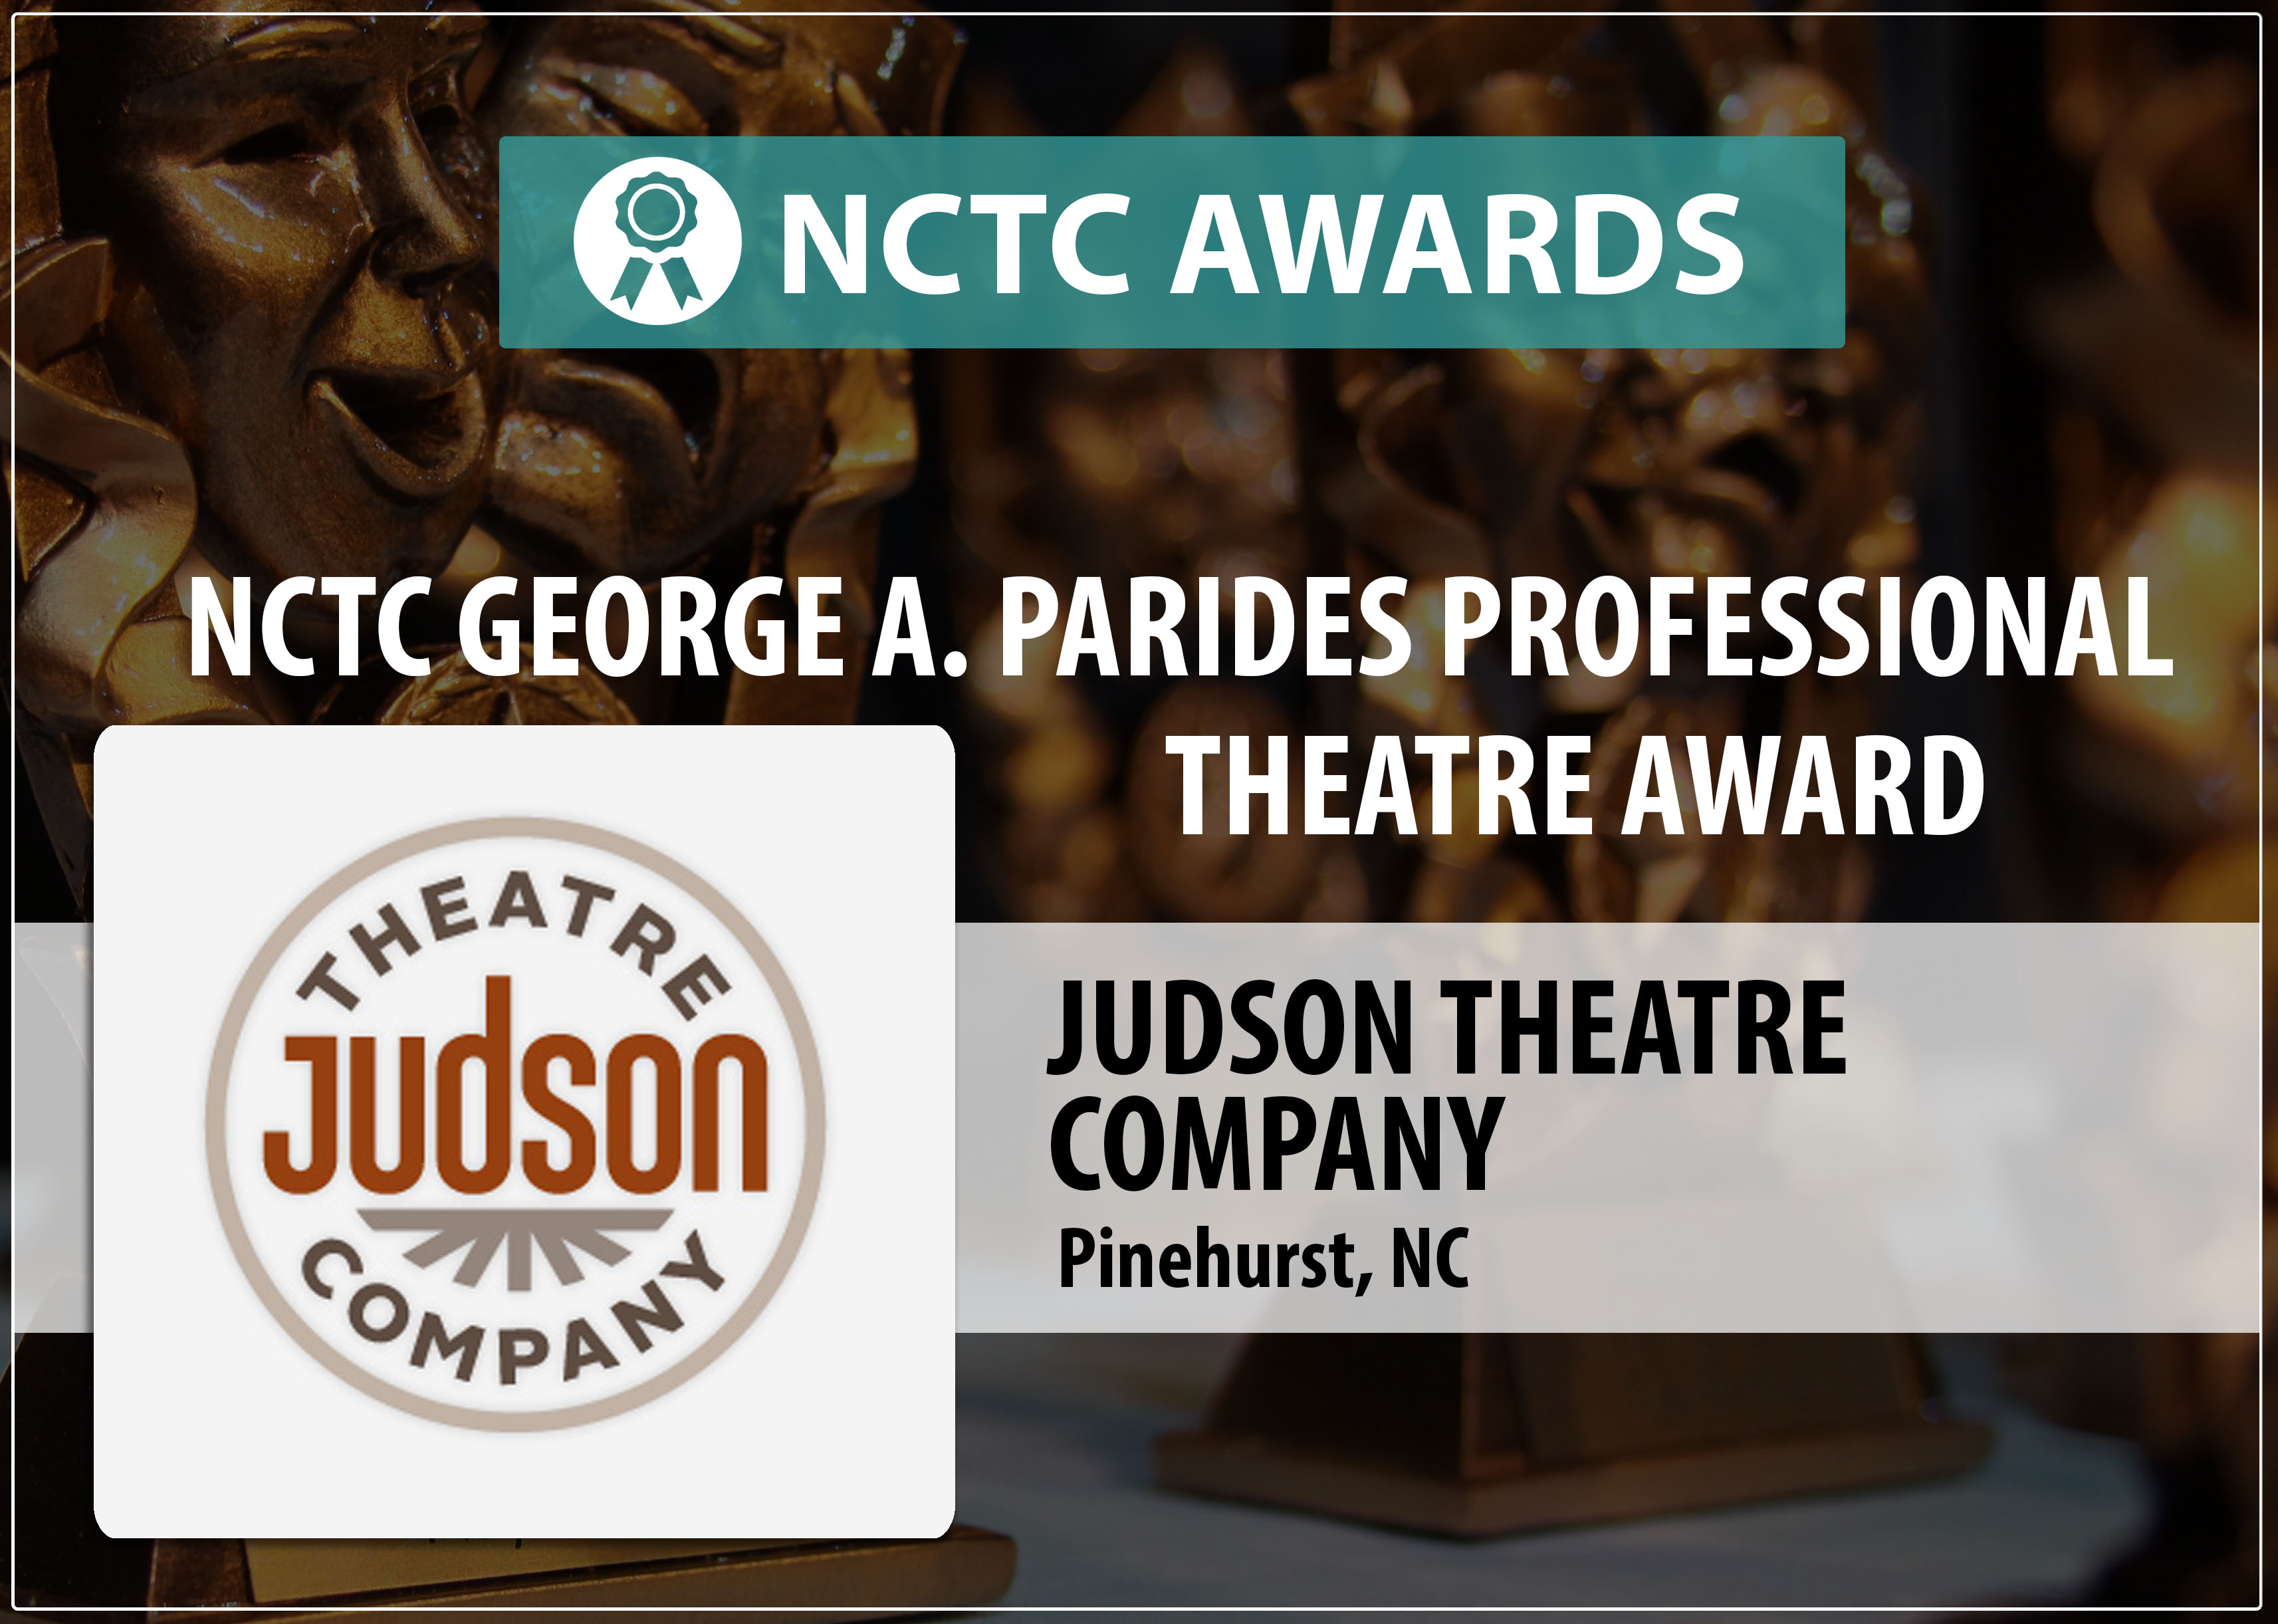 NCTC Georg A. Parides Professional Theatre Award Judson Theatre Company